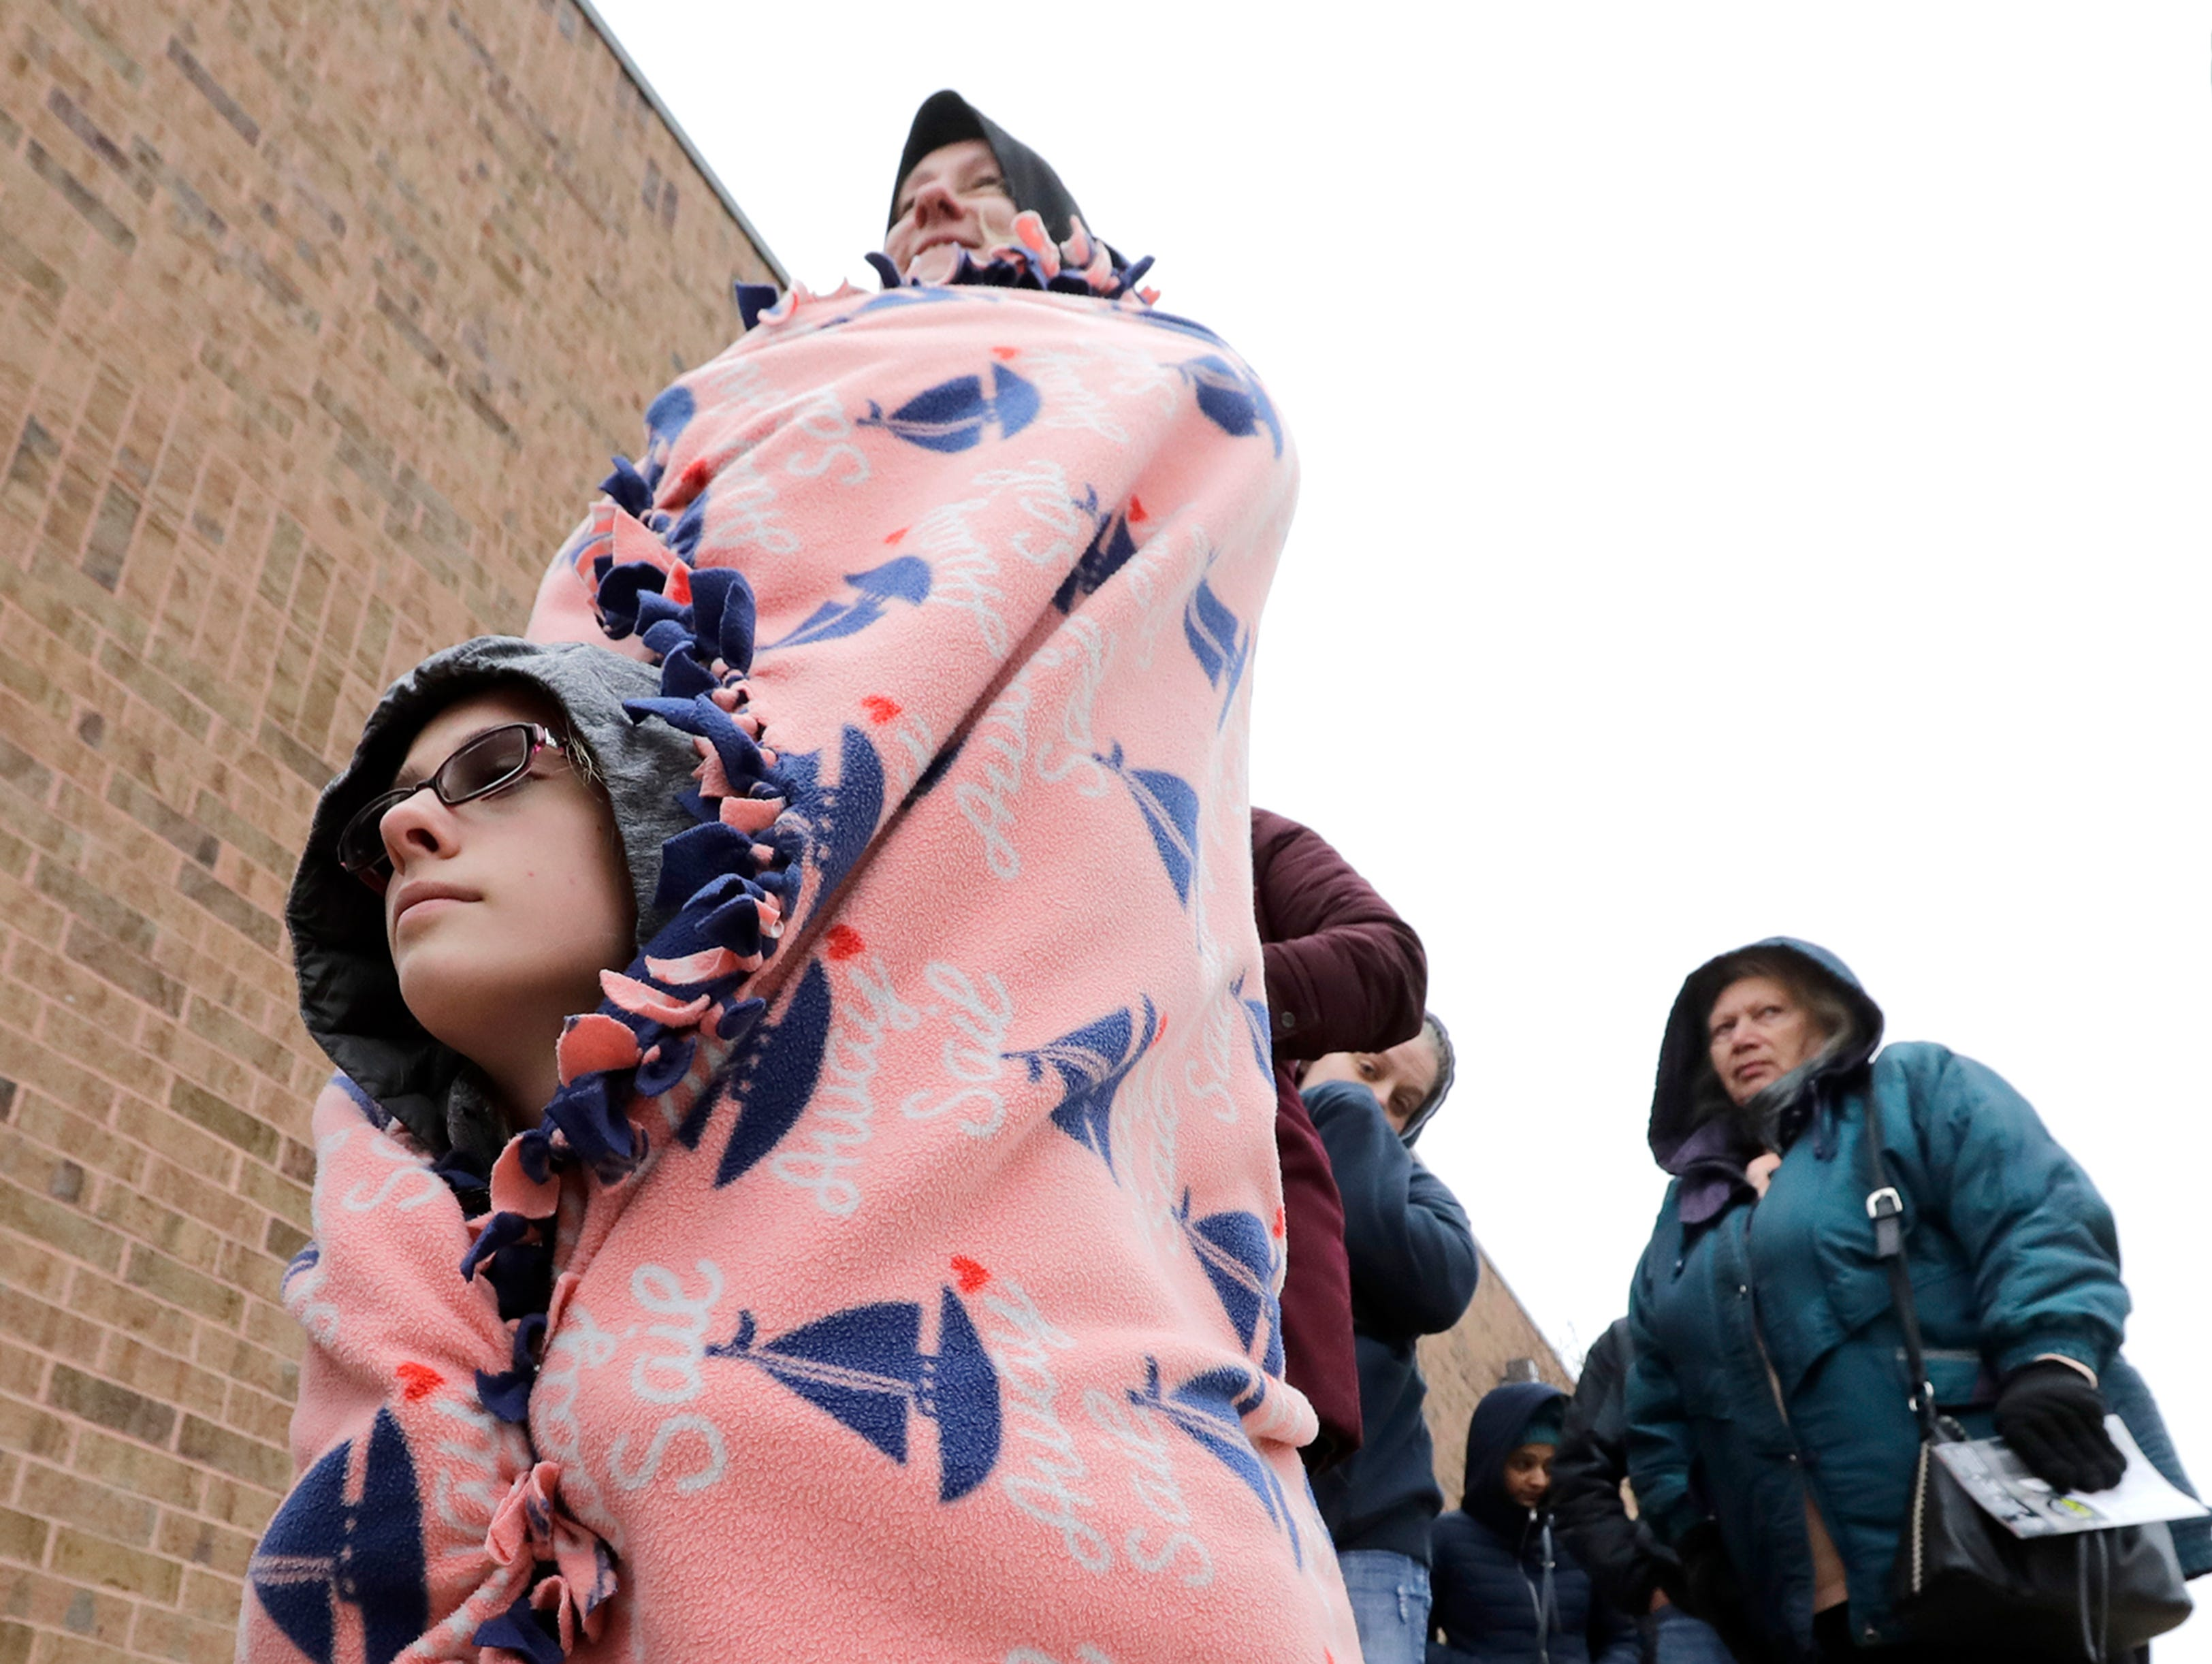 Jennifer Diedrick, bottom, tries to stay warm by crouching under her mother Sadie Diedrick's blanket while waiting in line at JCPenney for Black Friday deals Thursday, November 22, 2018, in Grand Chute, Wis. The two are from Appleton.Dan Powers/USA TODAY NETWORK-Wisconsin